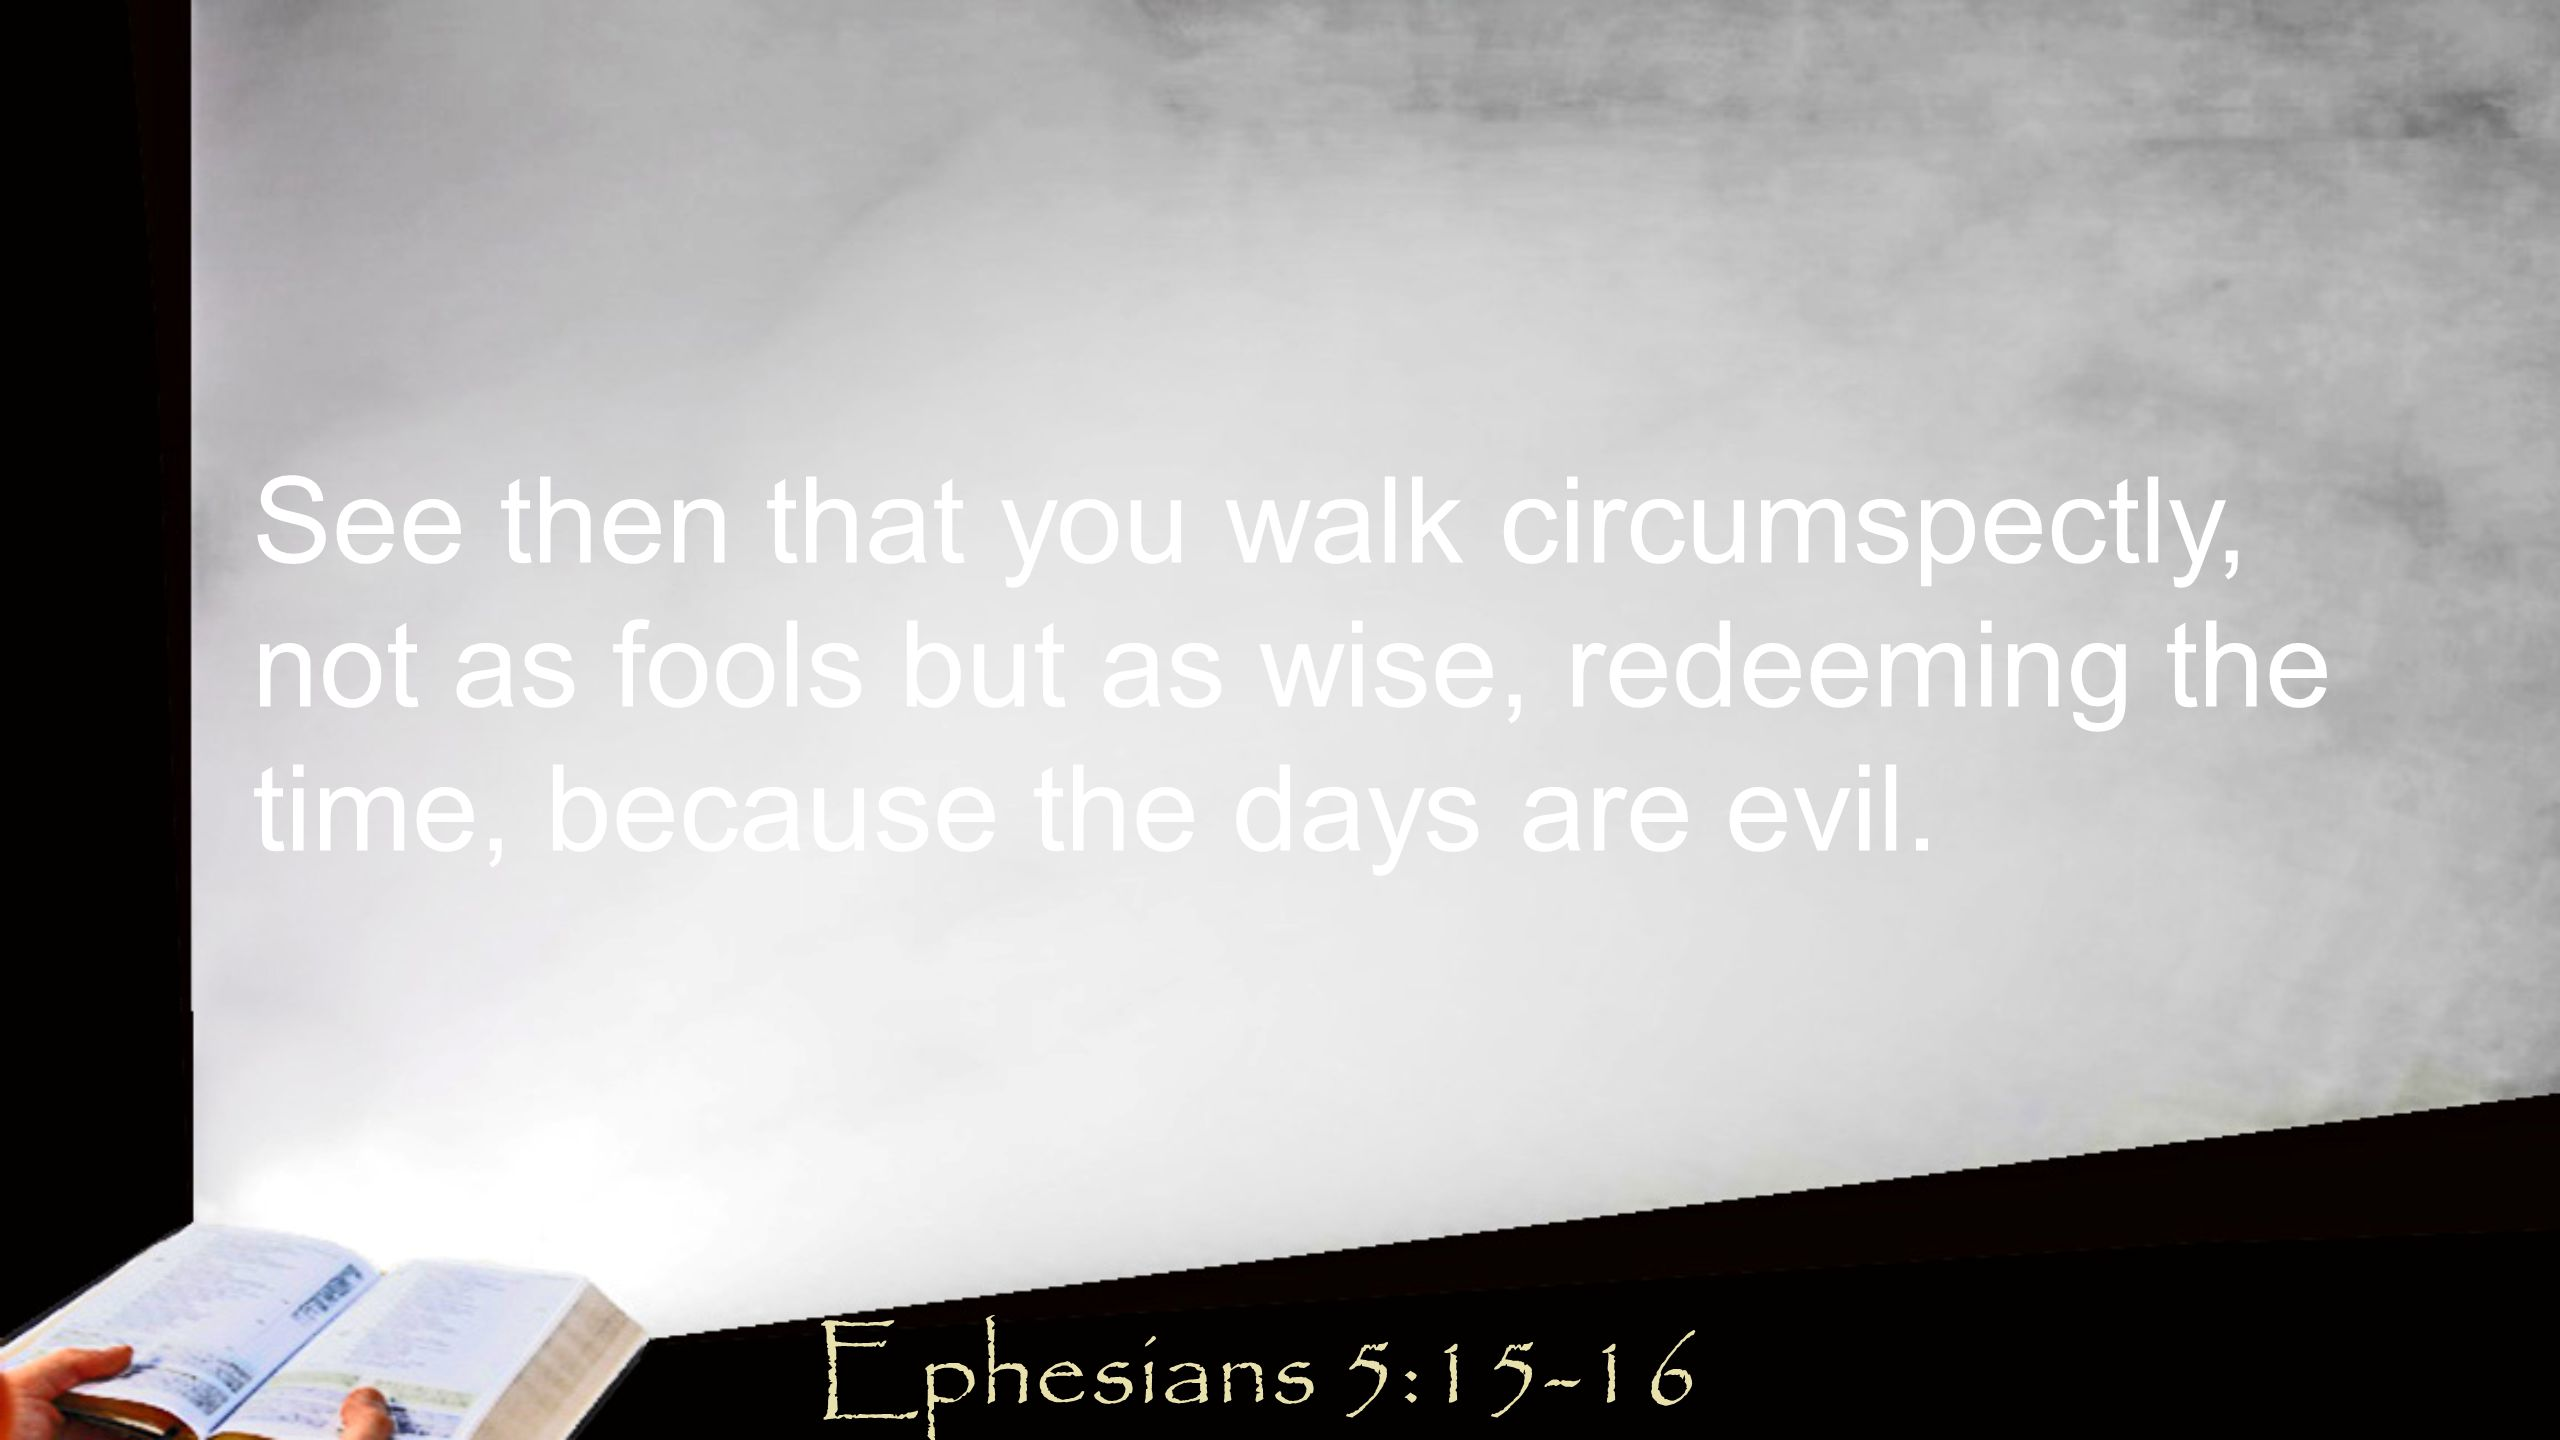 See then that you walk circumspectly, not as fools but as wise, redeeming the time, because the days are evil.